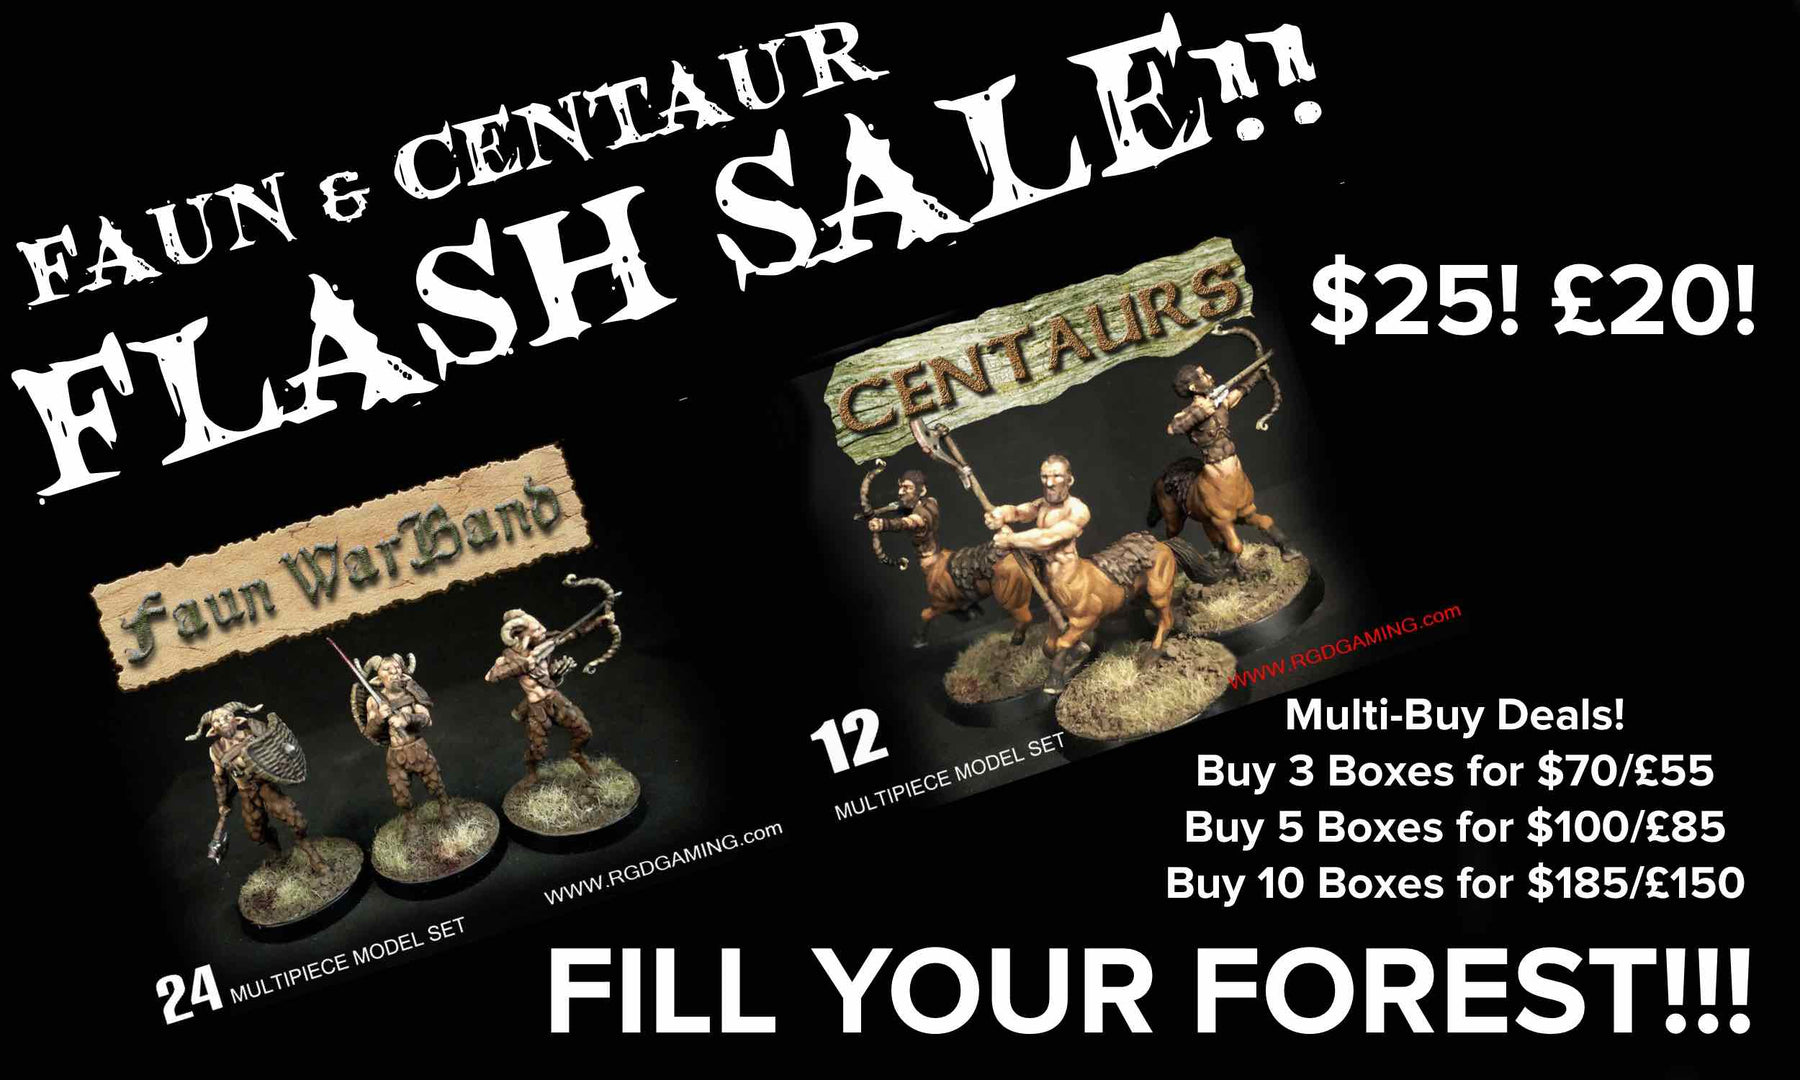 Flash Sale! RGD Fauns and Centaurs!